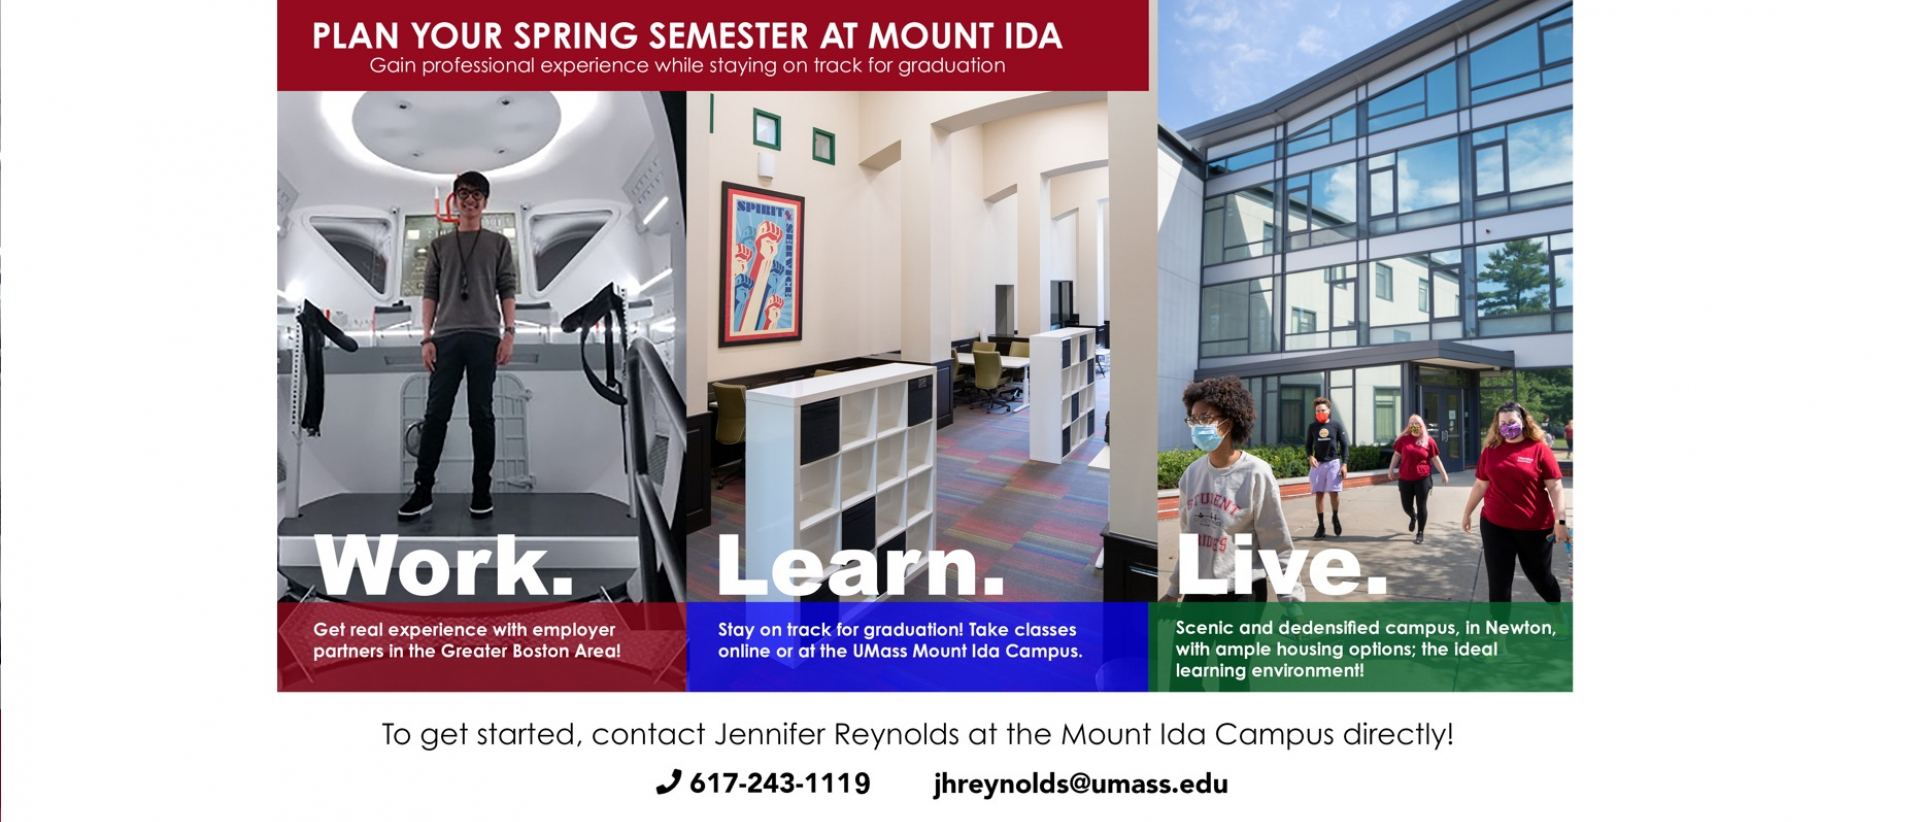 Plan your Spring Semester at Mount Ida - Gain professional experience while staying on track for graduation.